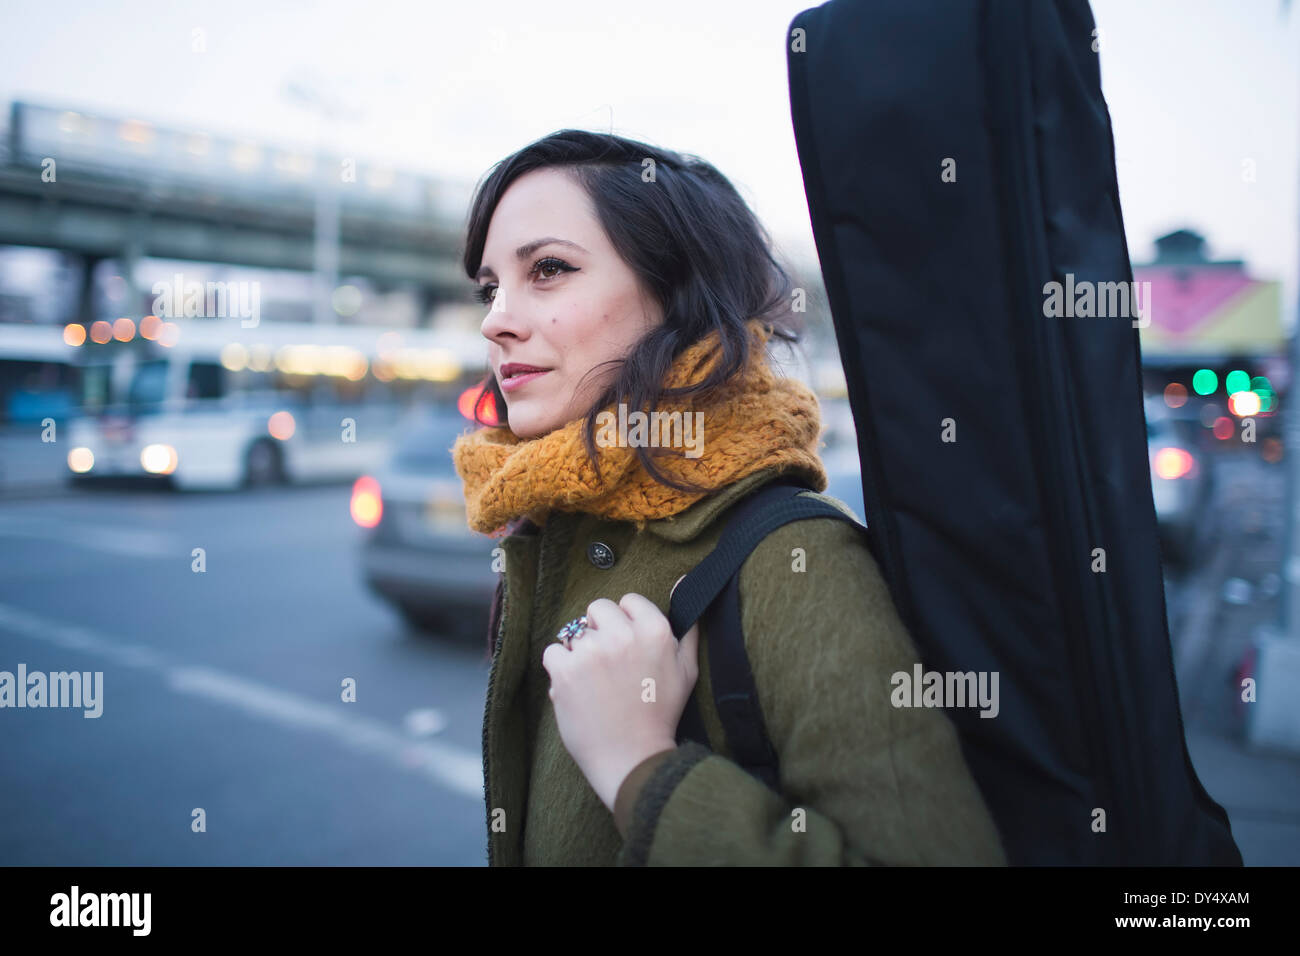 Young woman carrying guitar case - Stock Image